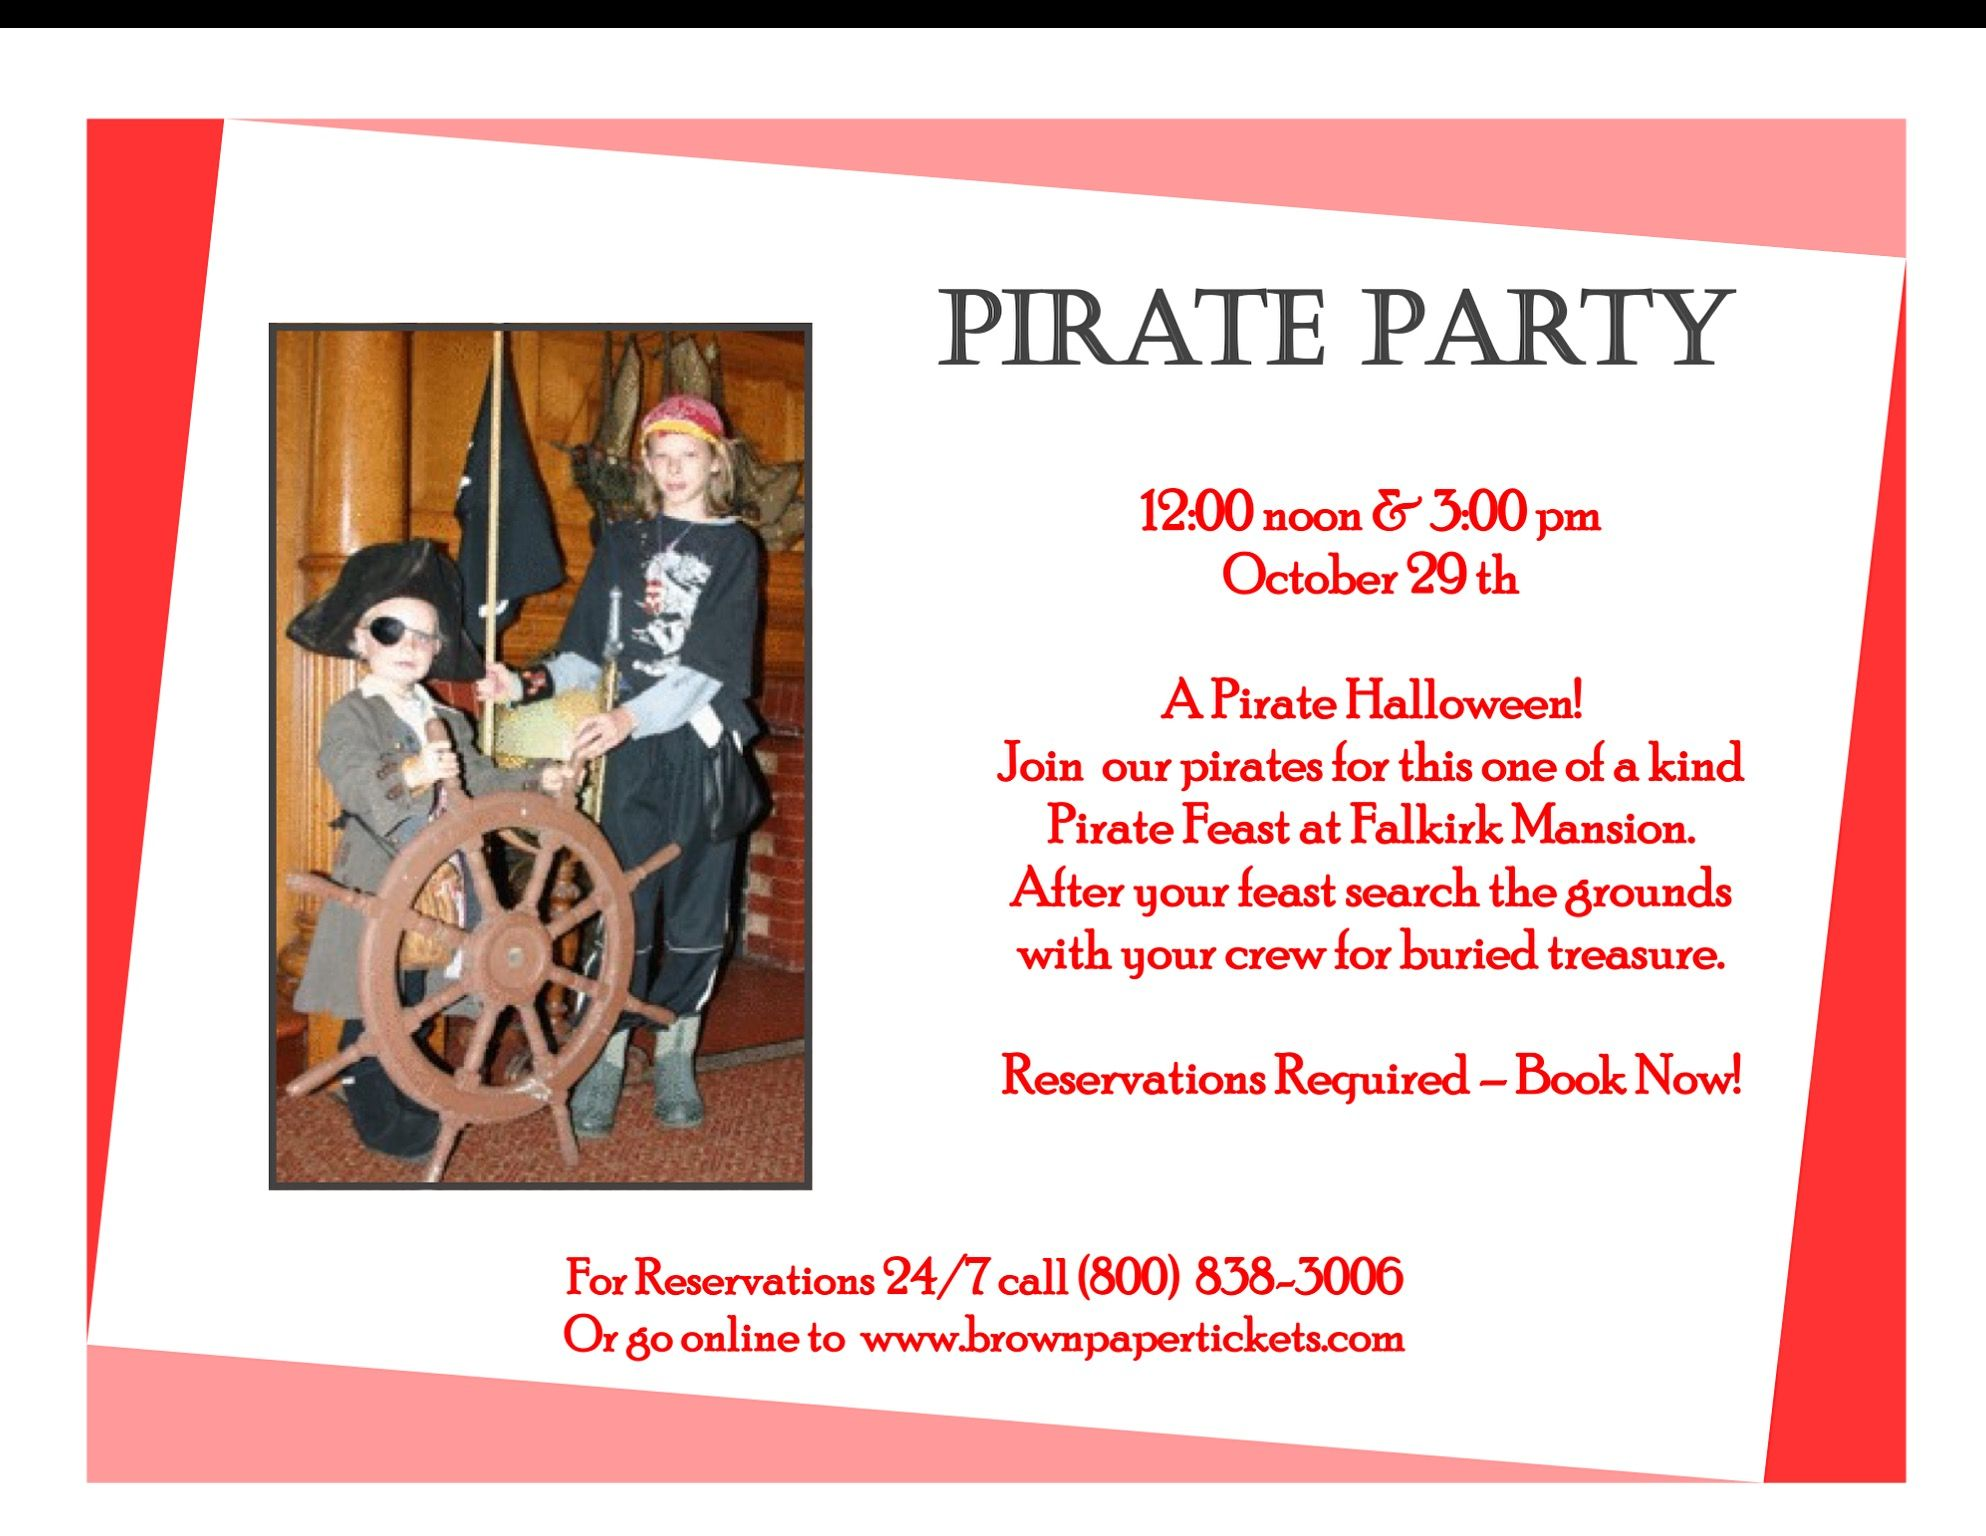 """Thar """"Fancy Scallywag!"""" be Pirates in th' House. Curse Th' Powder Chest! festive Hallow'n event fer children o' all ages. Eat an' be merry an' find your buried treasure wi' carbunculously real pirates. Event includes a """"pirate feast"""", treasure hunt, and Hallow'n tricks and treats!  Reservations required Saturday, Oct 29, 2016 12:00pm and 3:00pm  Adult Ticket $20.00 ($21.69 w/service fee) Child Ticket $22.50 ($24.28 w/service fee) Make reservations by calling 1-800-838-3006 or Brown Paper…"""